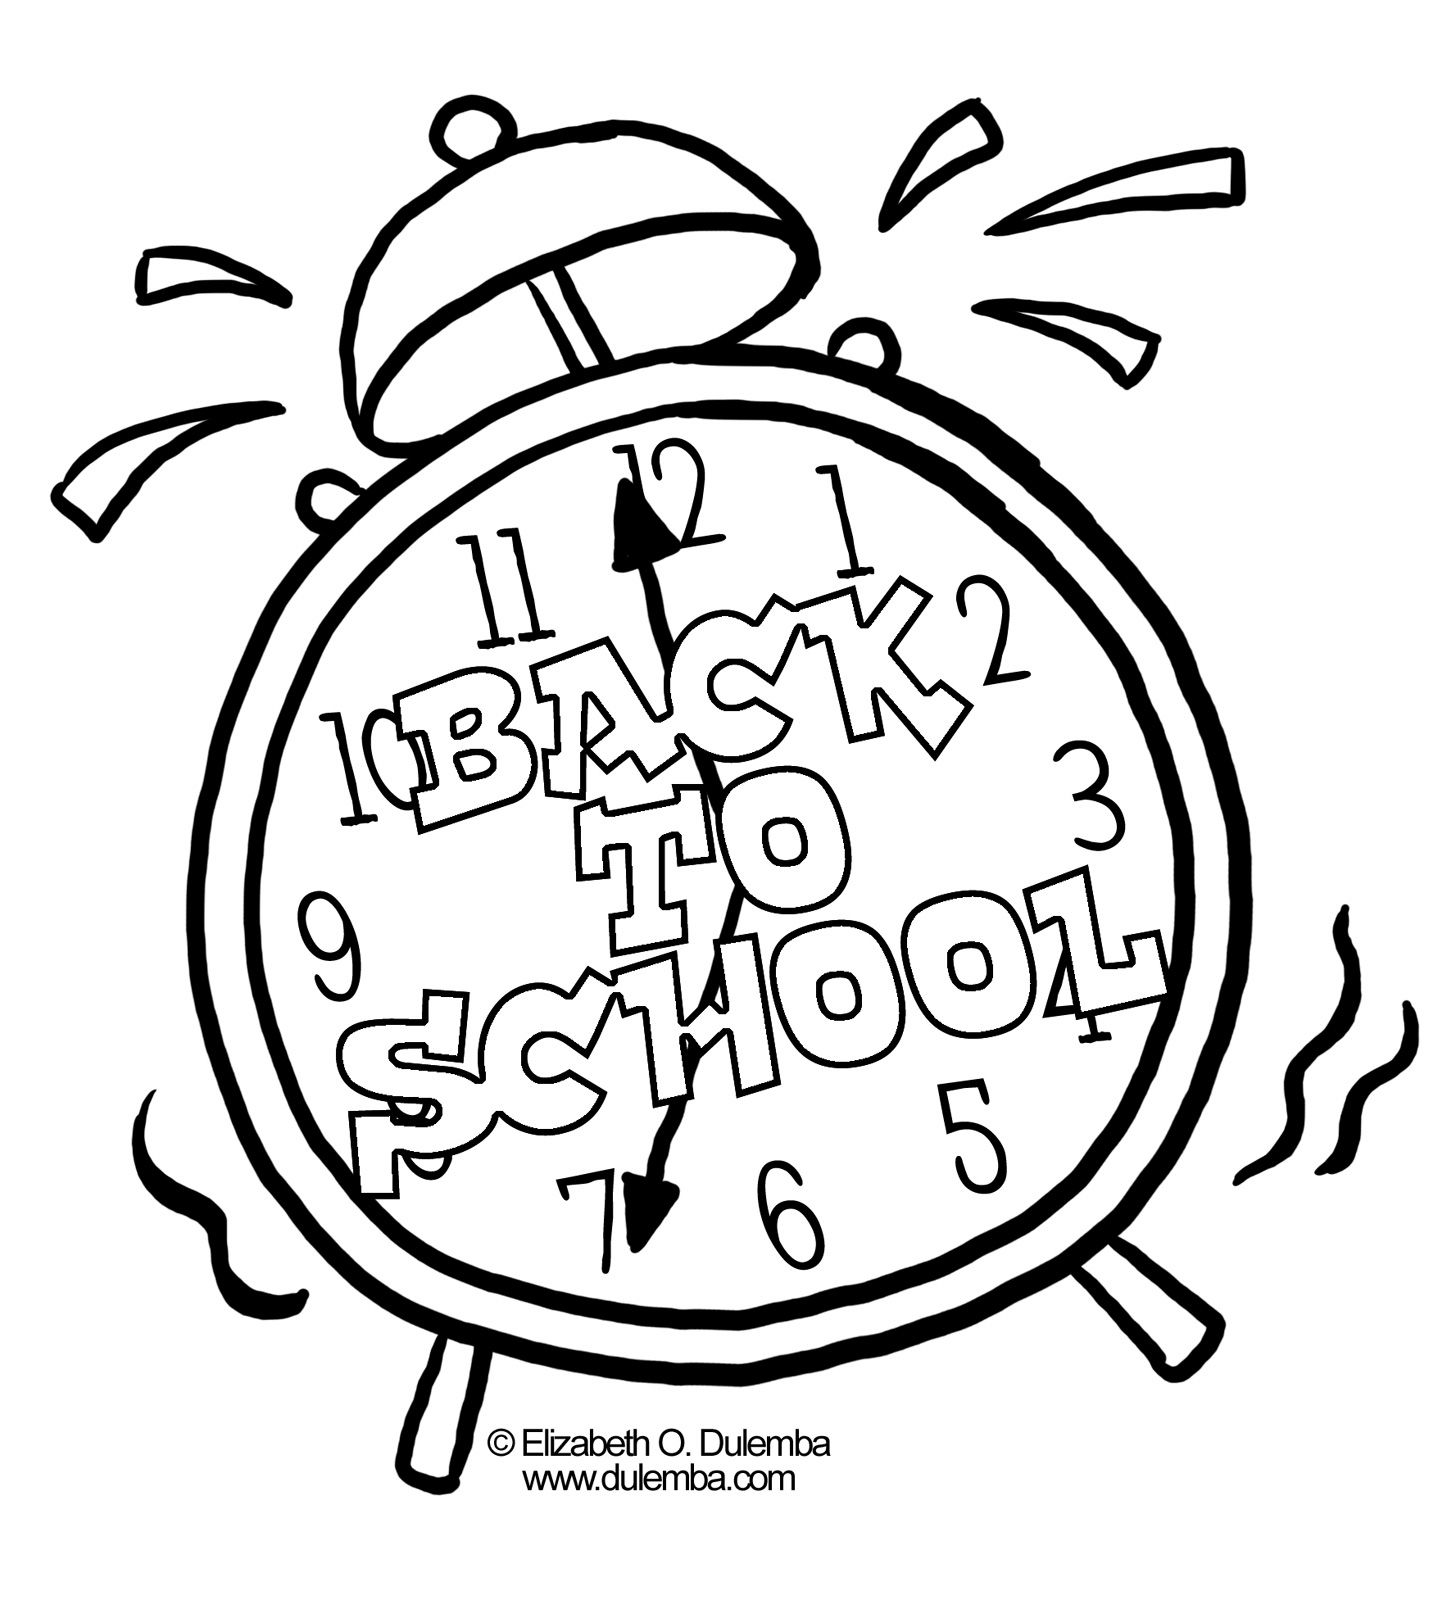 Go Sign Coloring Page